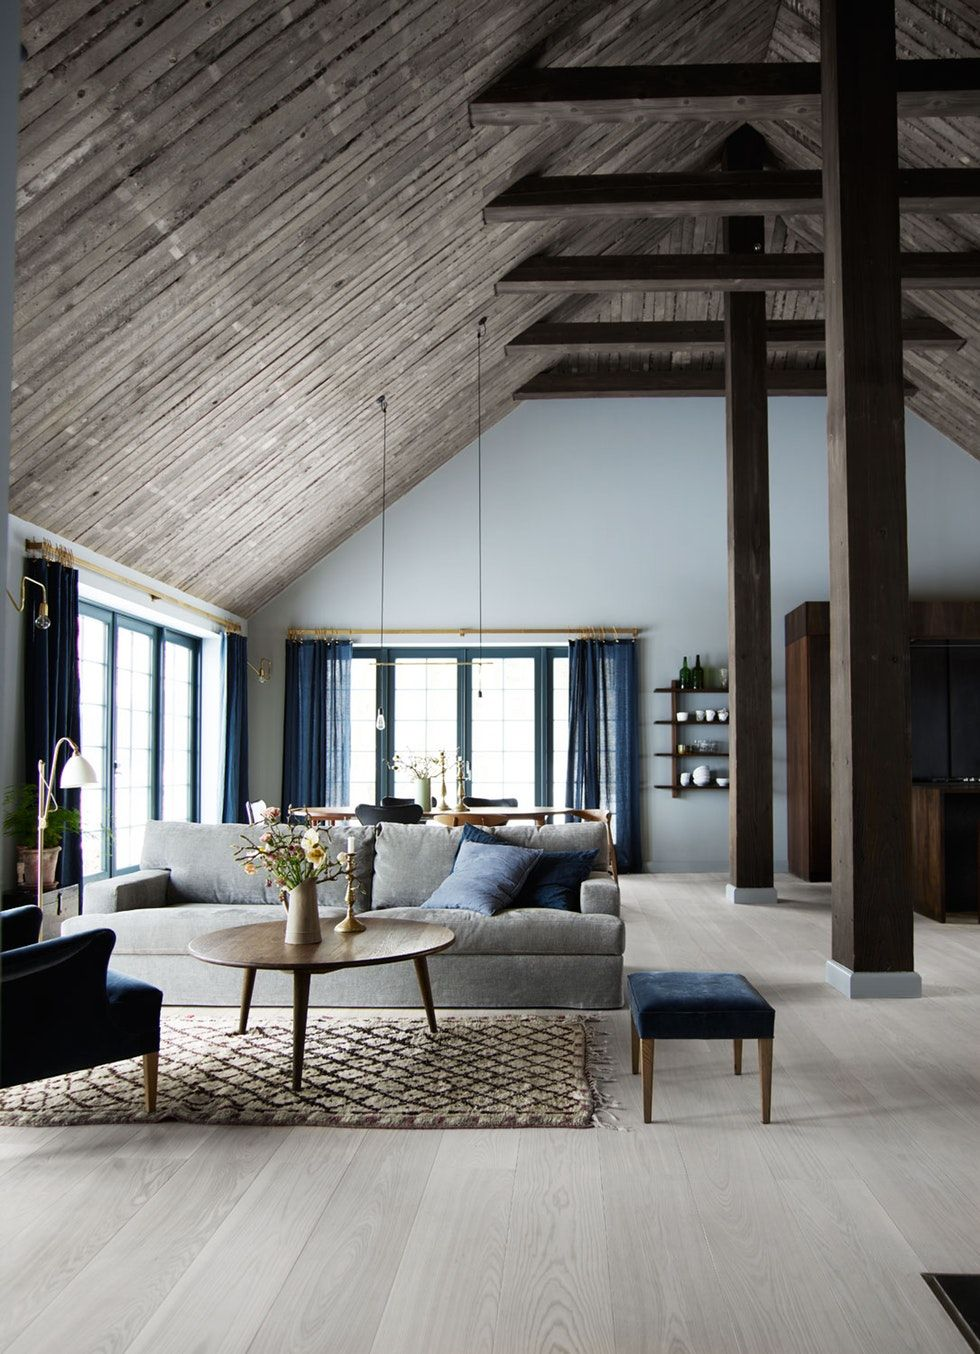 13 Reasons Why You Should Add Decorative Ceiling Beams To Your